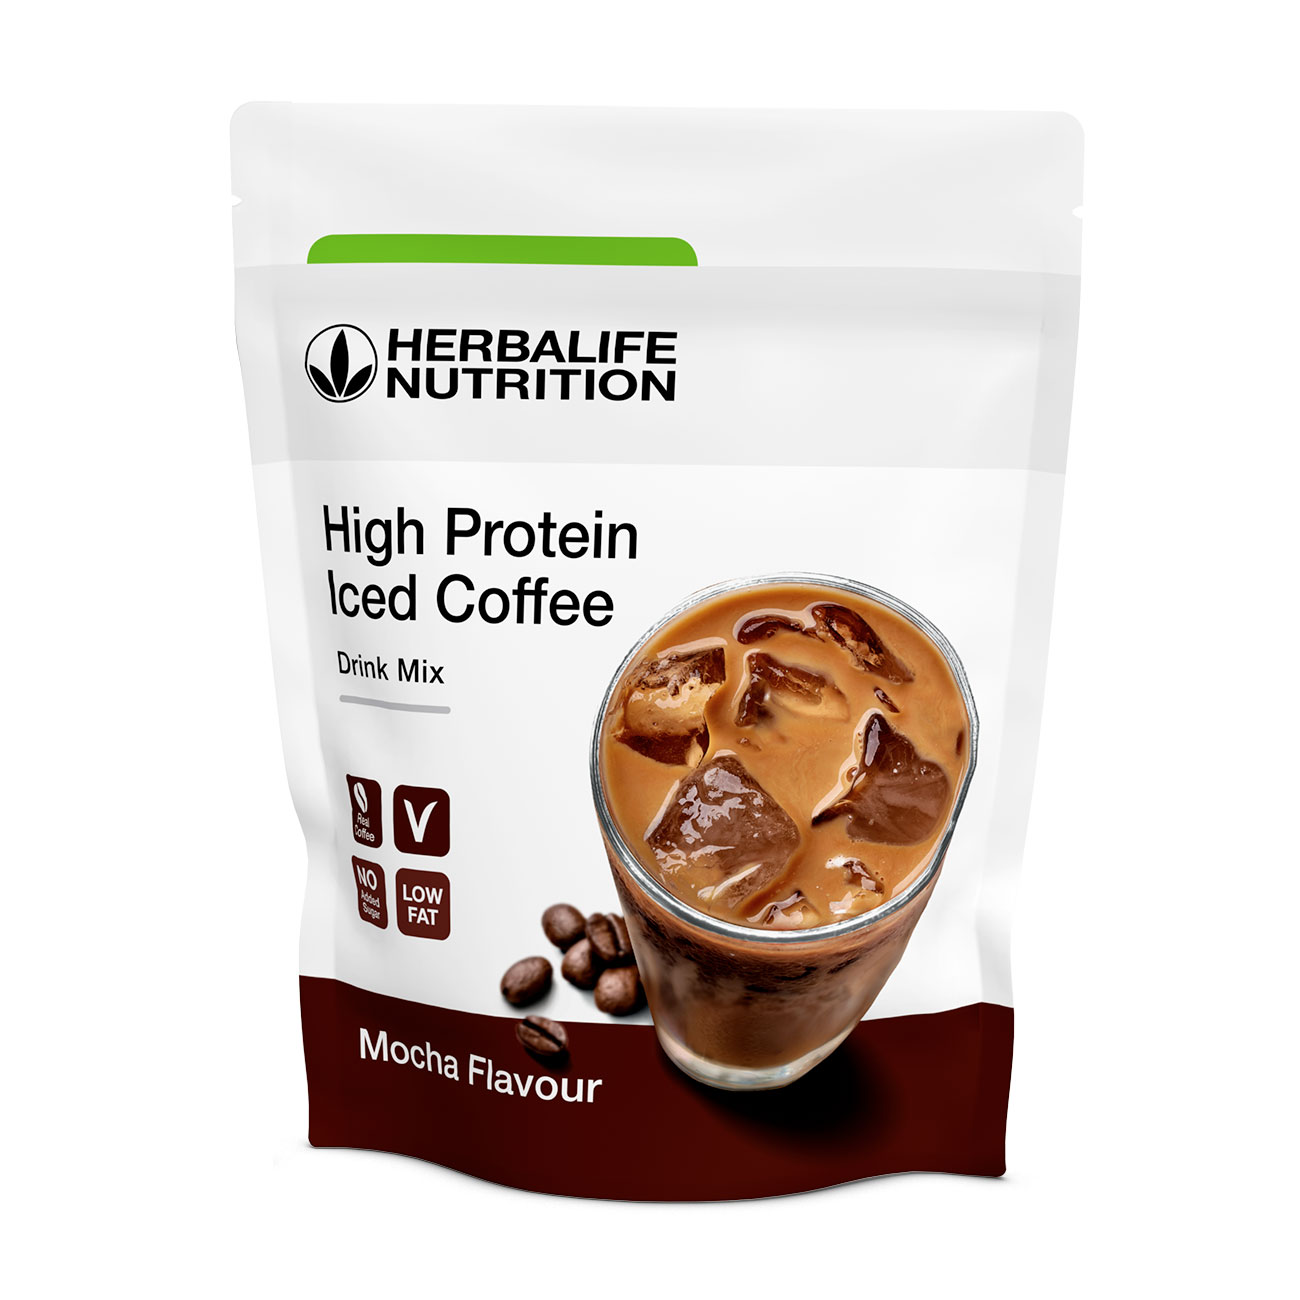 High Protein Iced Coffee  Mocha product shot